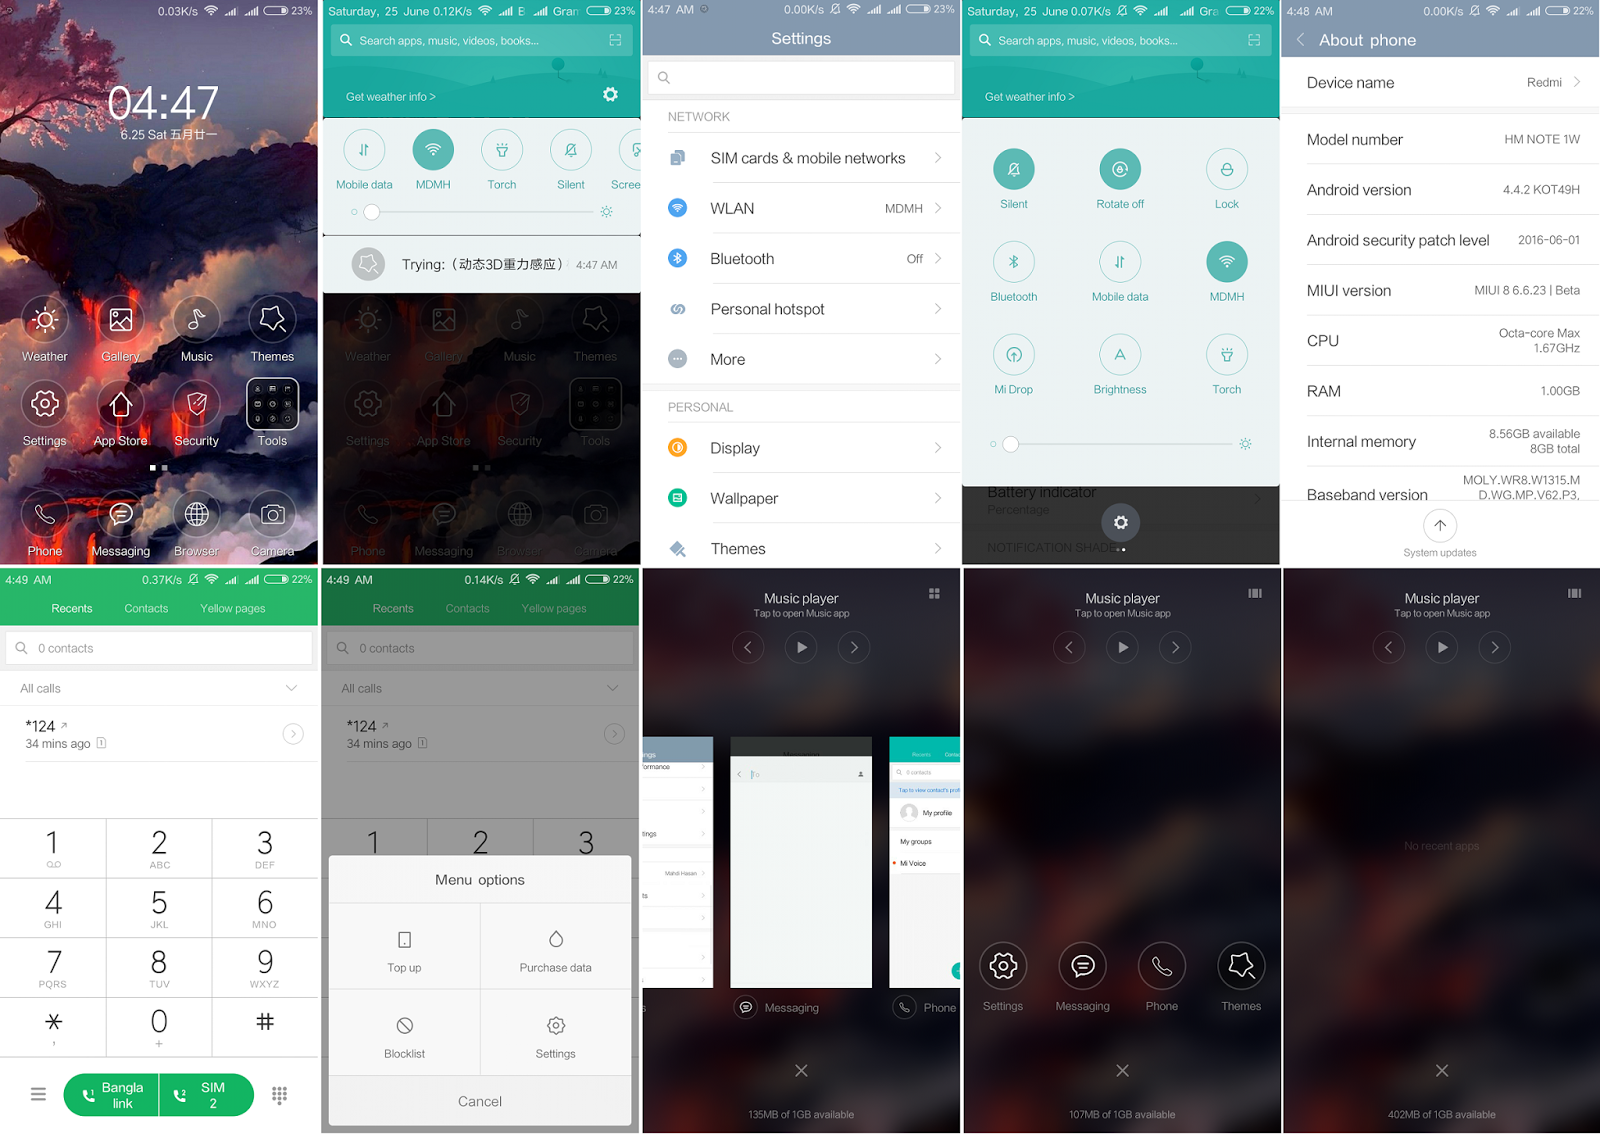 MIUI 8 Update ❂ Release Version 6 6 23 ❂ Free Download for MTK6592